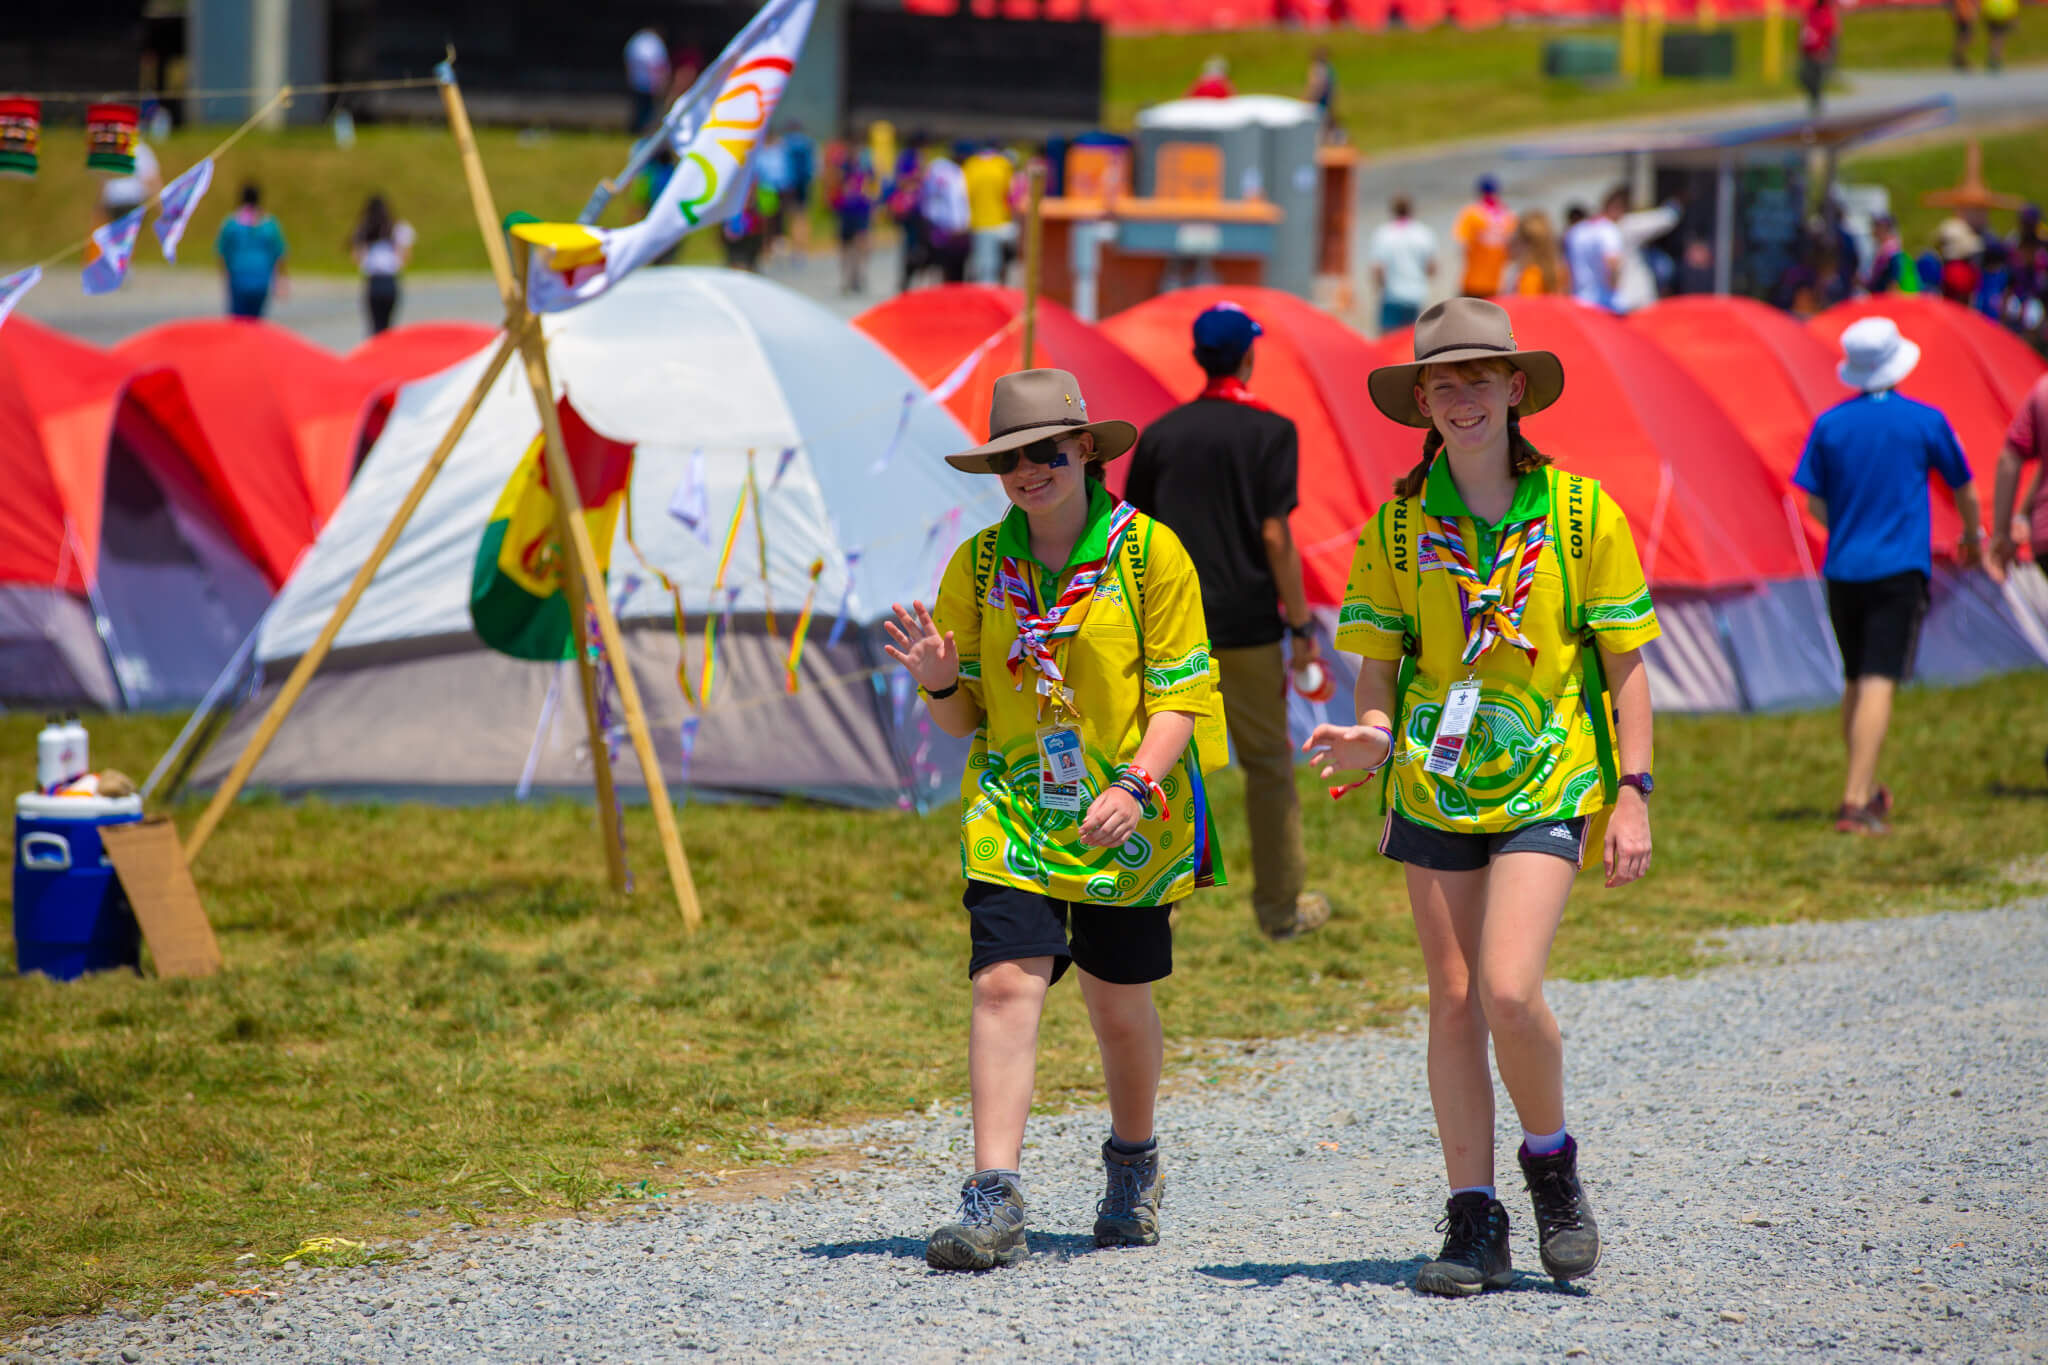 WSJ2023 Registrations Two Scouts Walking at Summit Bechtel Reserve 2019